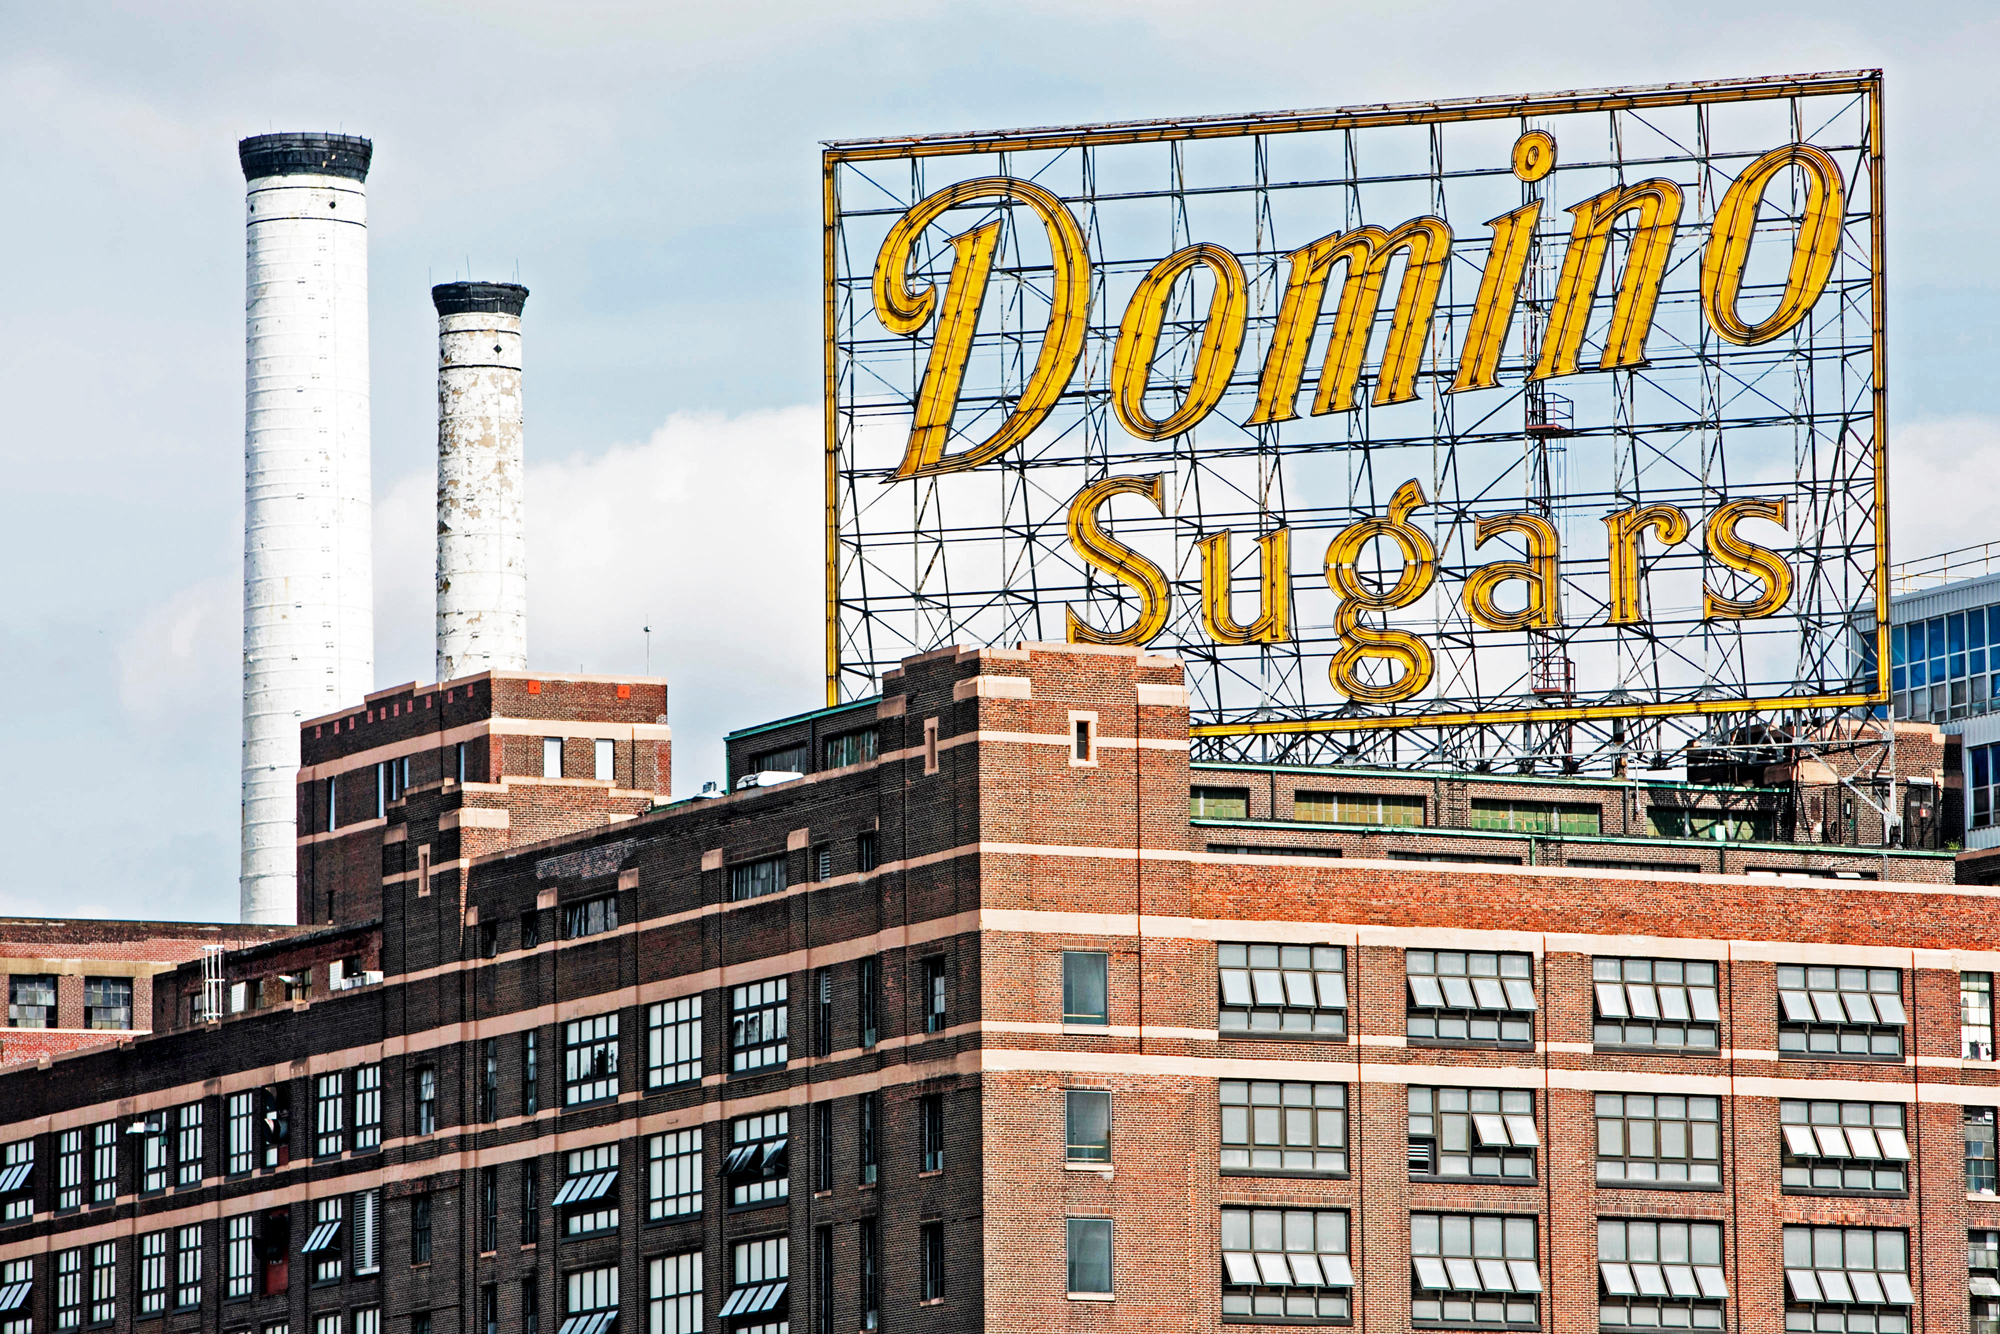 Domino Sugar Factory exterior and sign